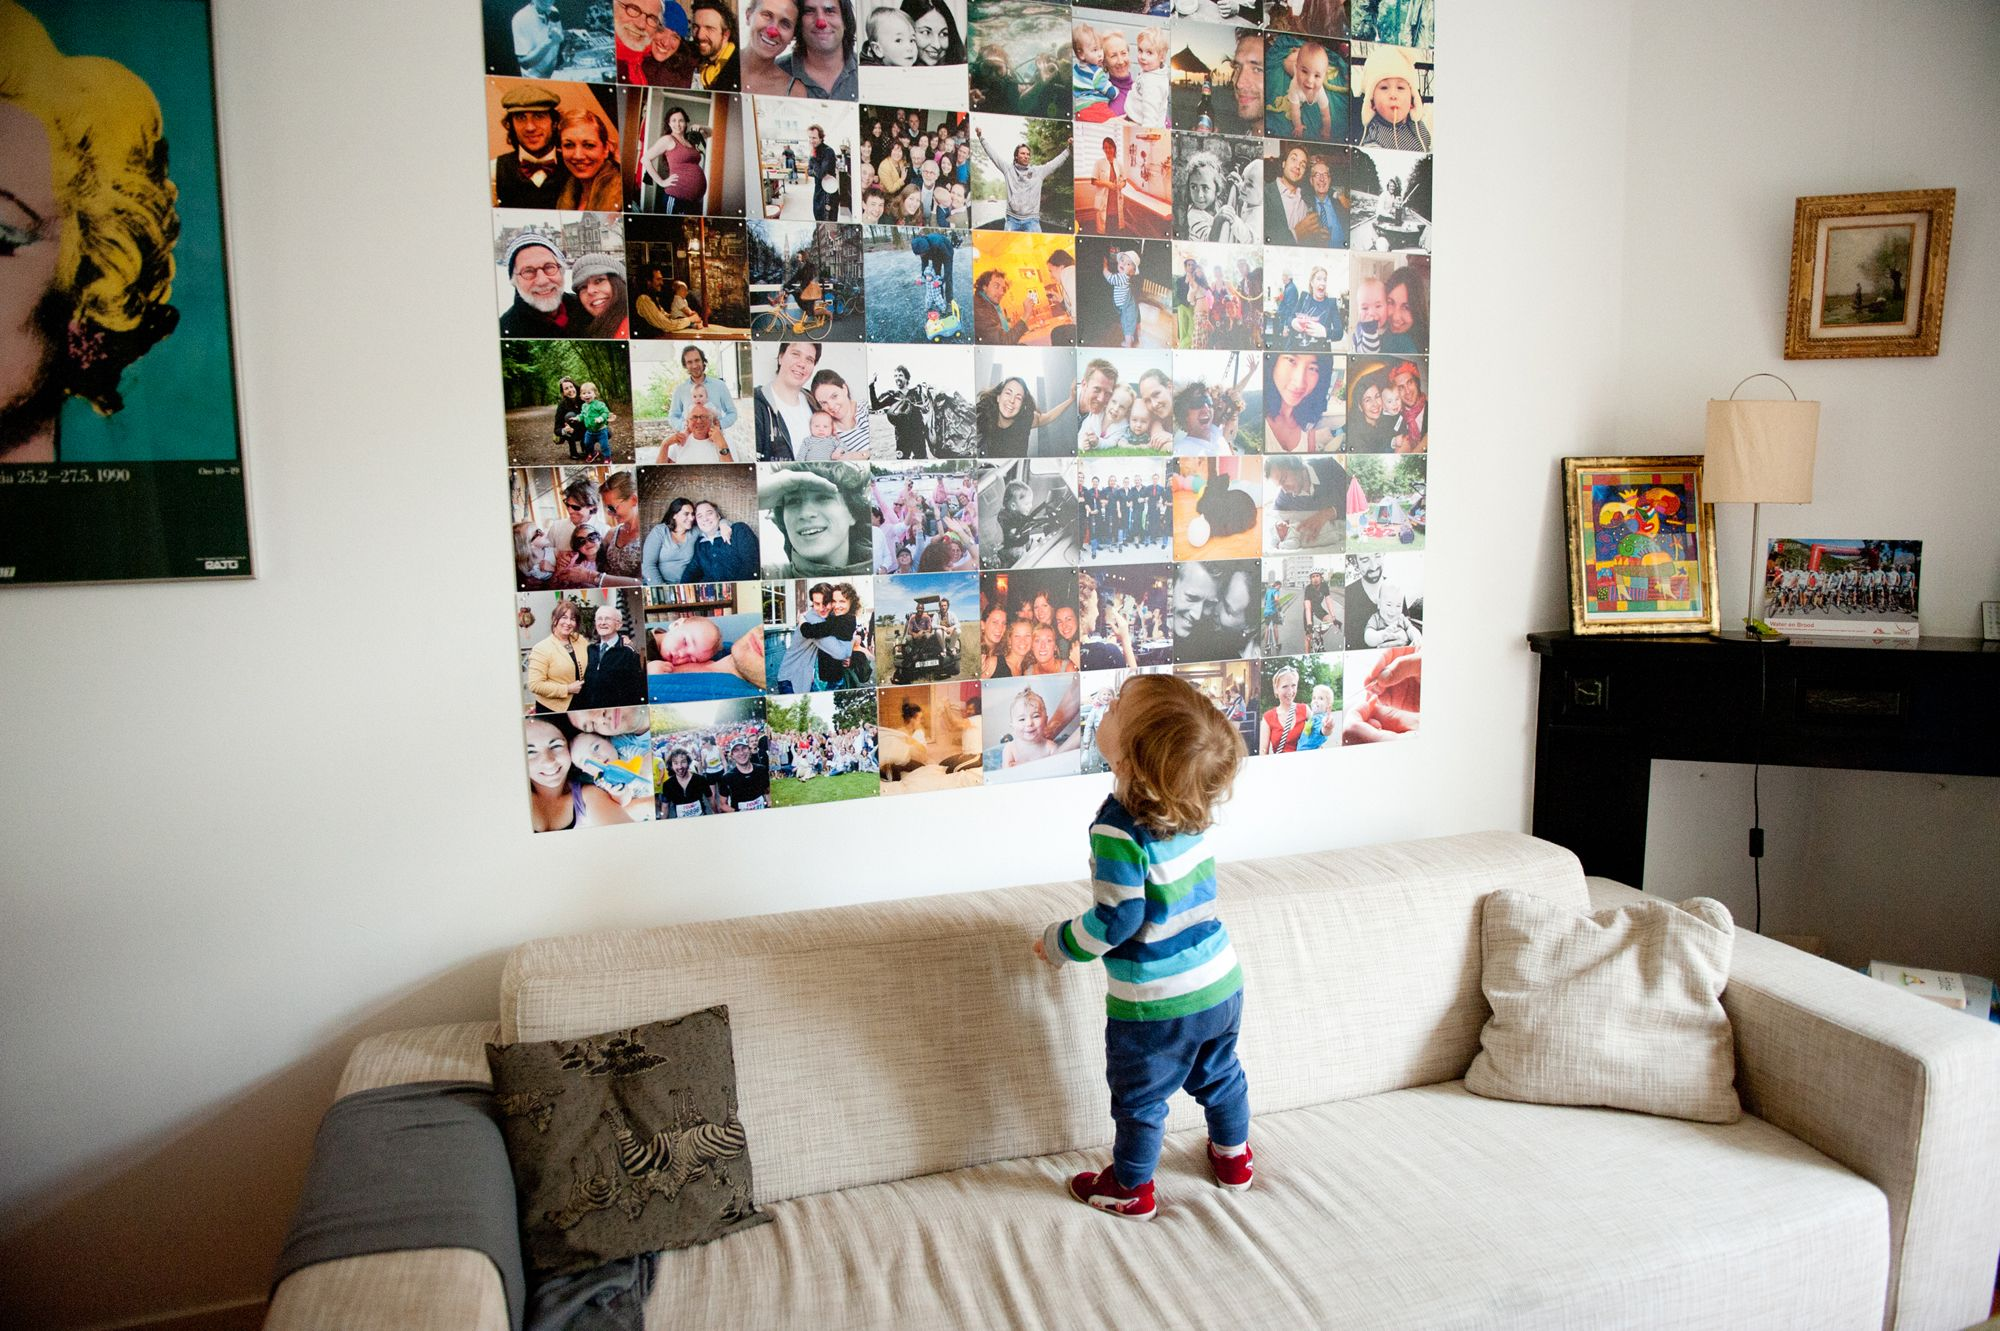 Ixxi collage by james muiser woonkamer pinterest collages illustraties en decoratie - Decoratie hoofdslaapkamer ...